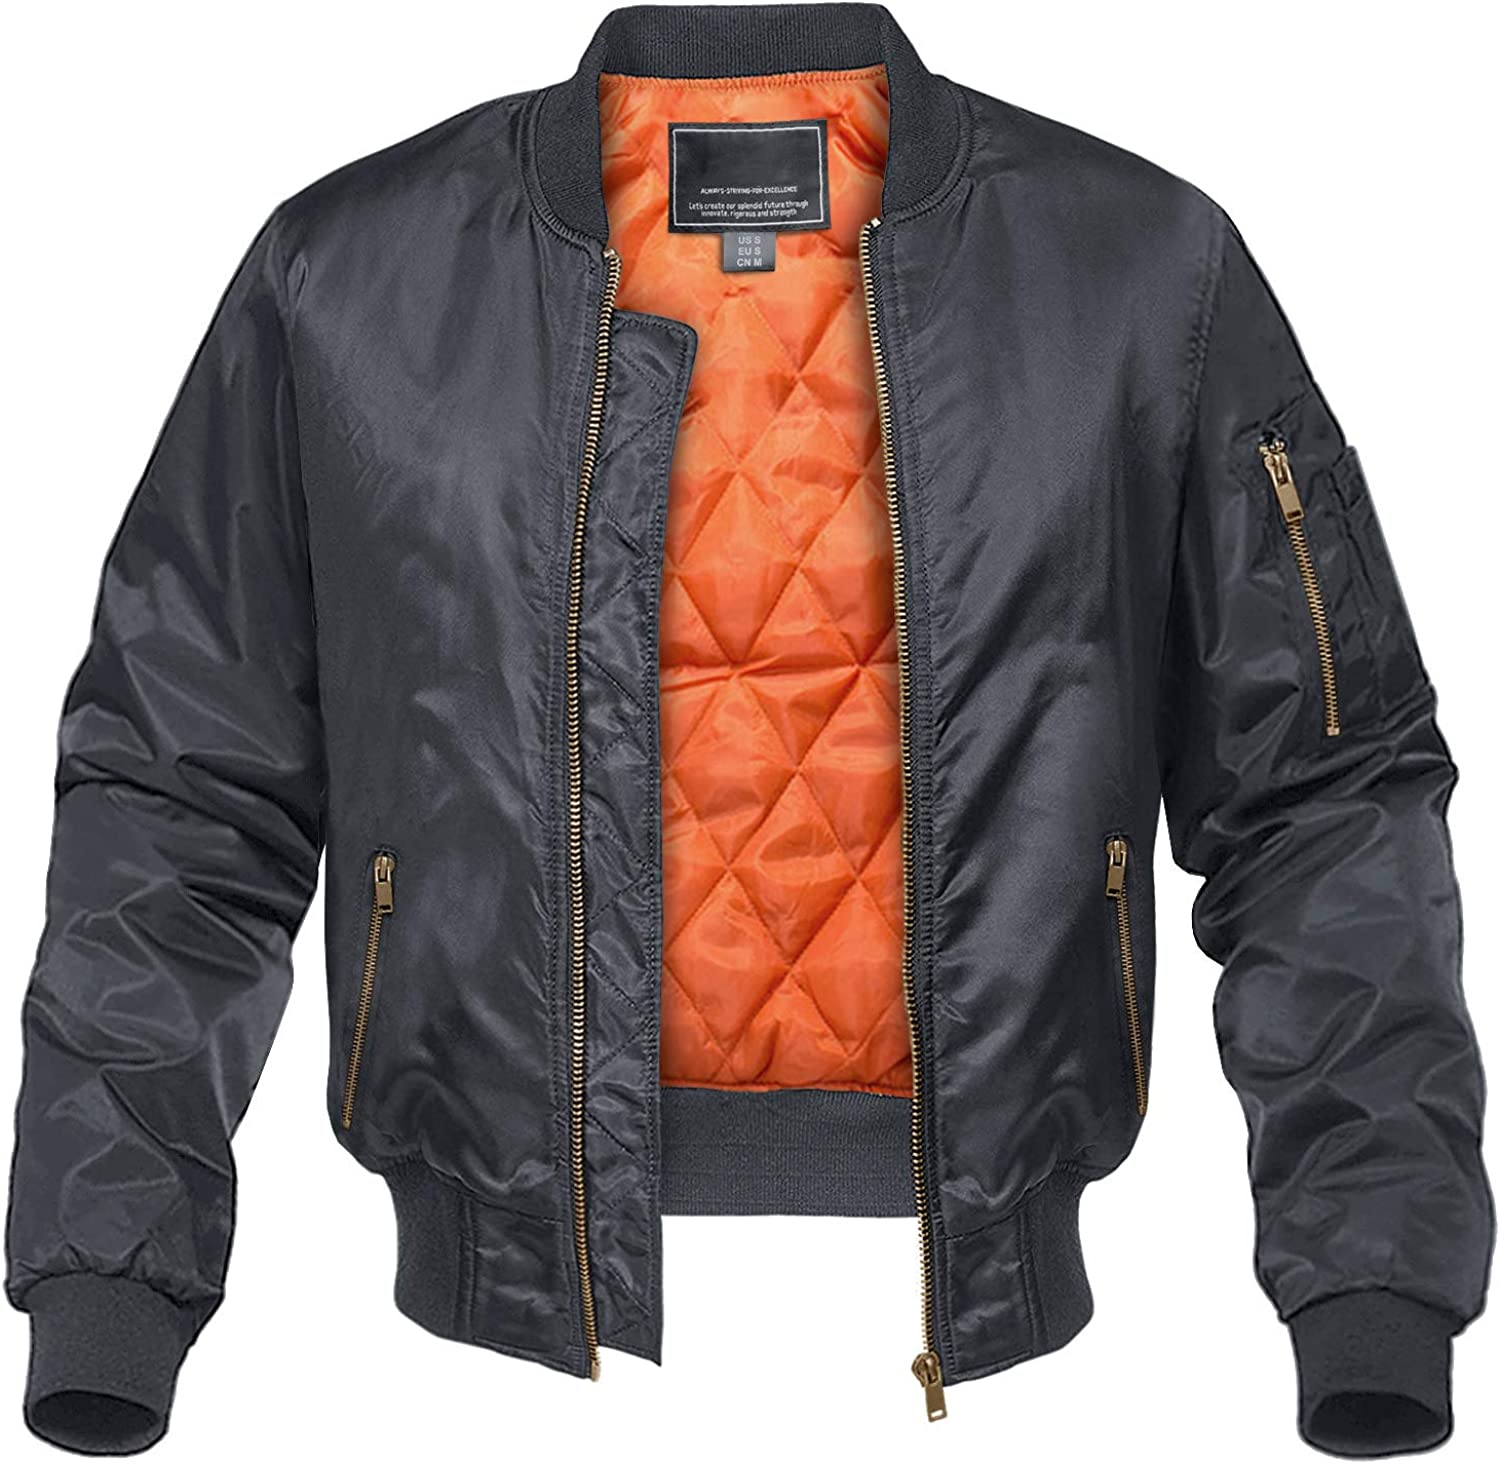 CRYSULLY Max 86% OFF Men's Jacket-Fall Winter Ja Windbreakers Bomber Outstanding Thicken